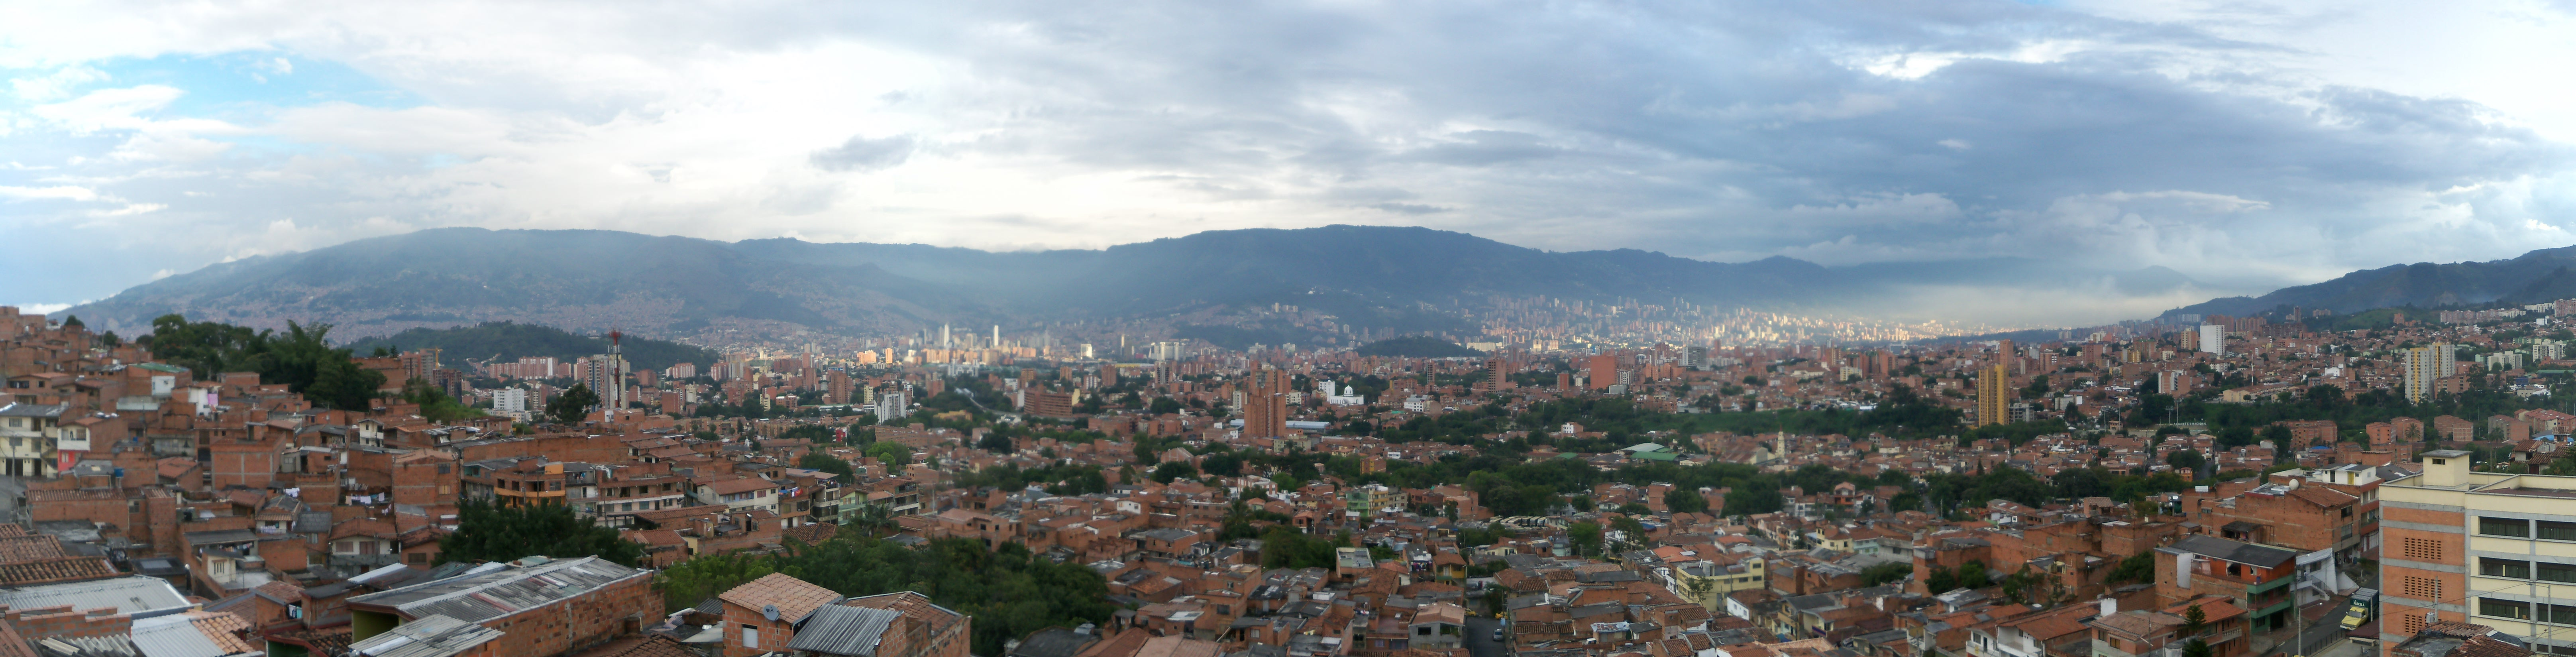 Medellin. Image by KLEPER via Flickr.